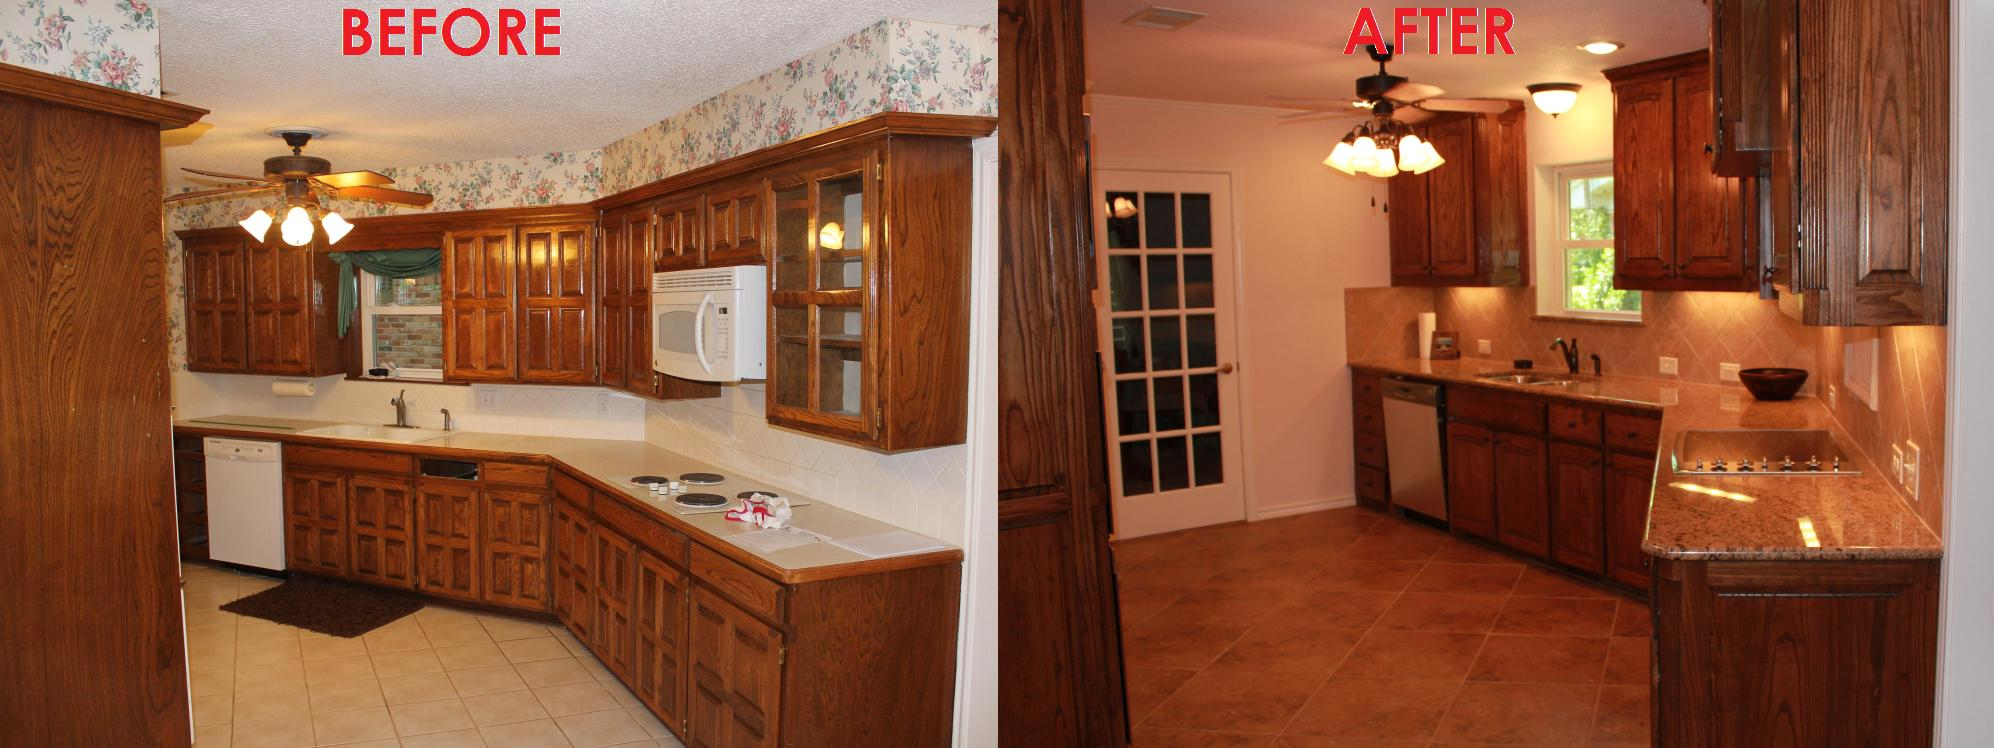 Small kitchen remodel before and after for stunning and Remodeling a small old house